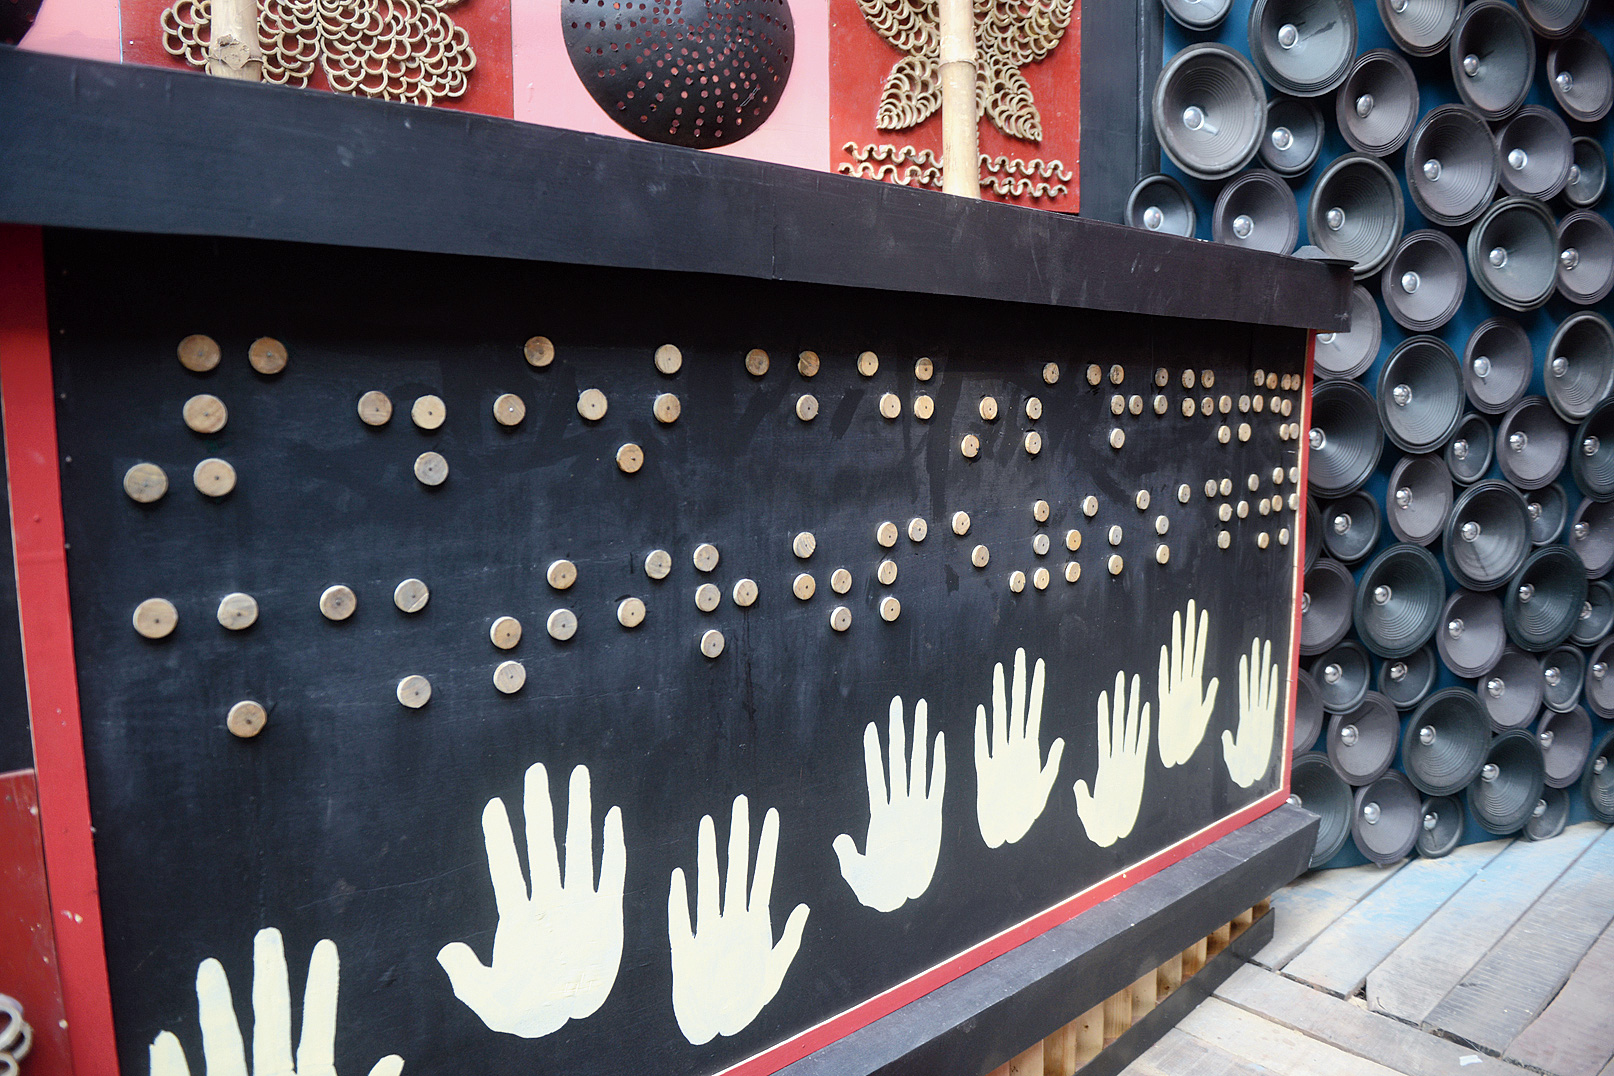 A part of the Durga mantra written in Braille on one of the walls of the pandal.